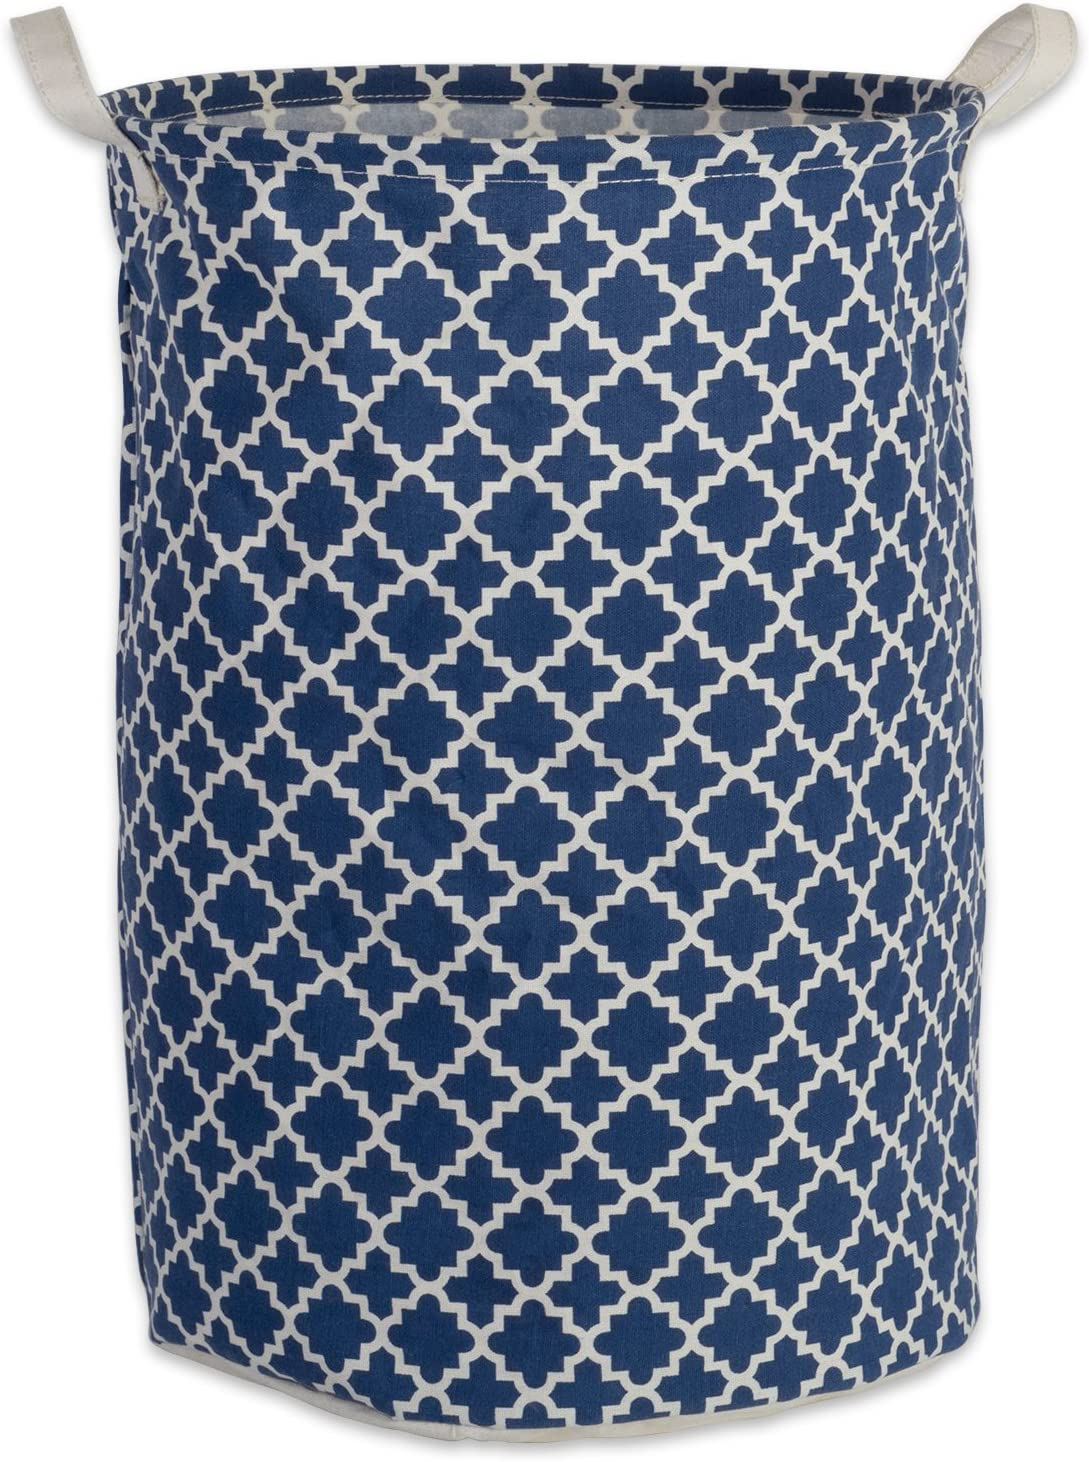 DII Cotton/Polyester PE Coated Assorted Laundry Bins, Hamper, Nautical Blue Lattice